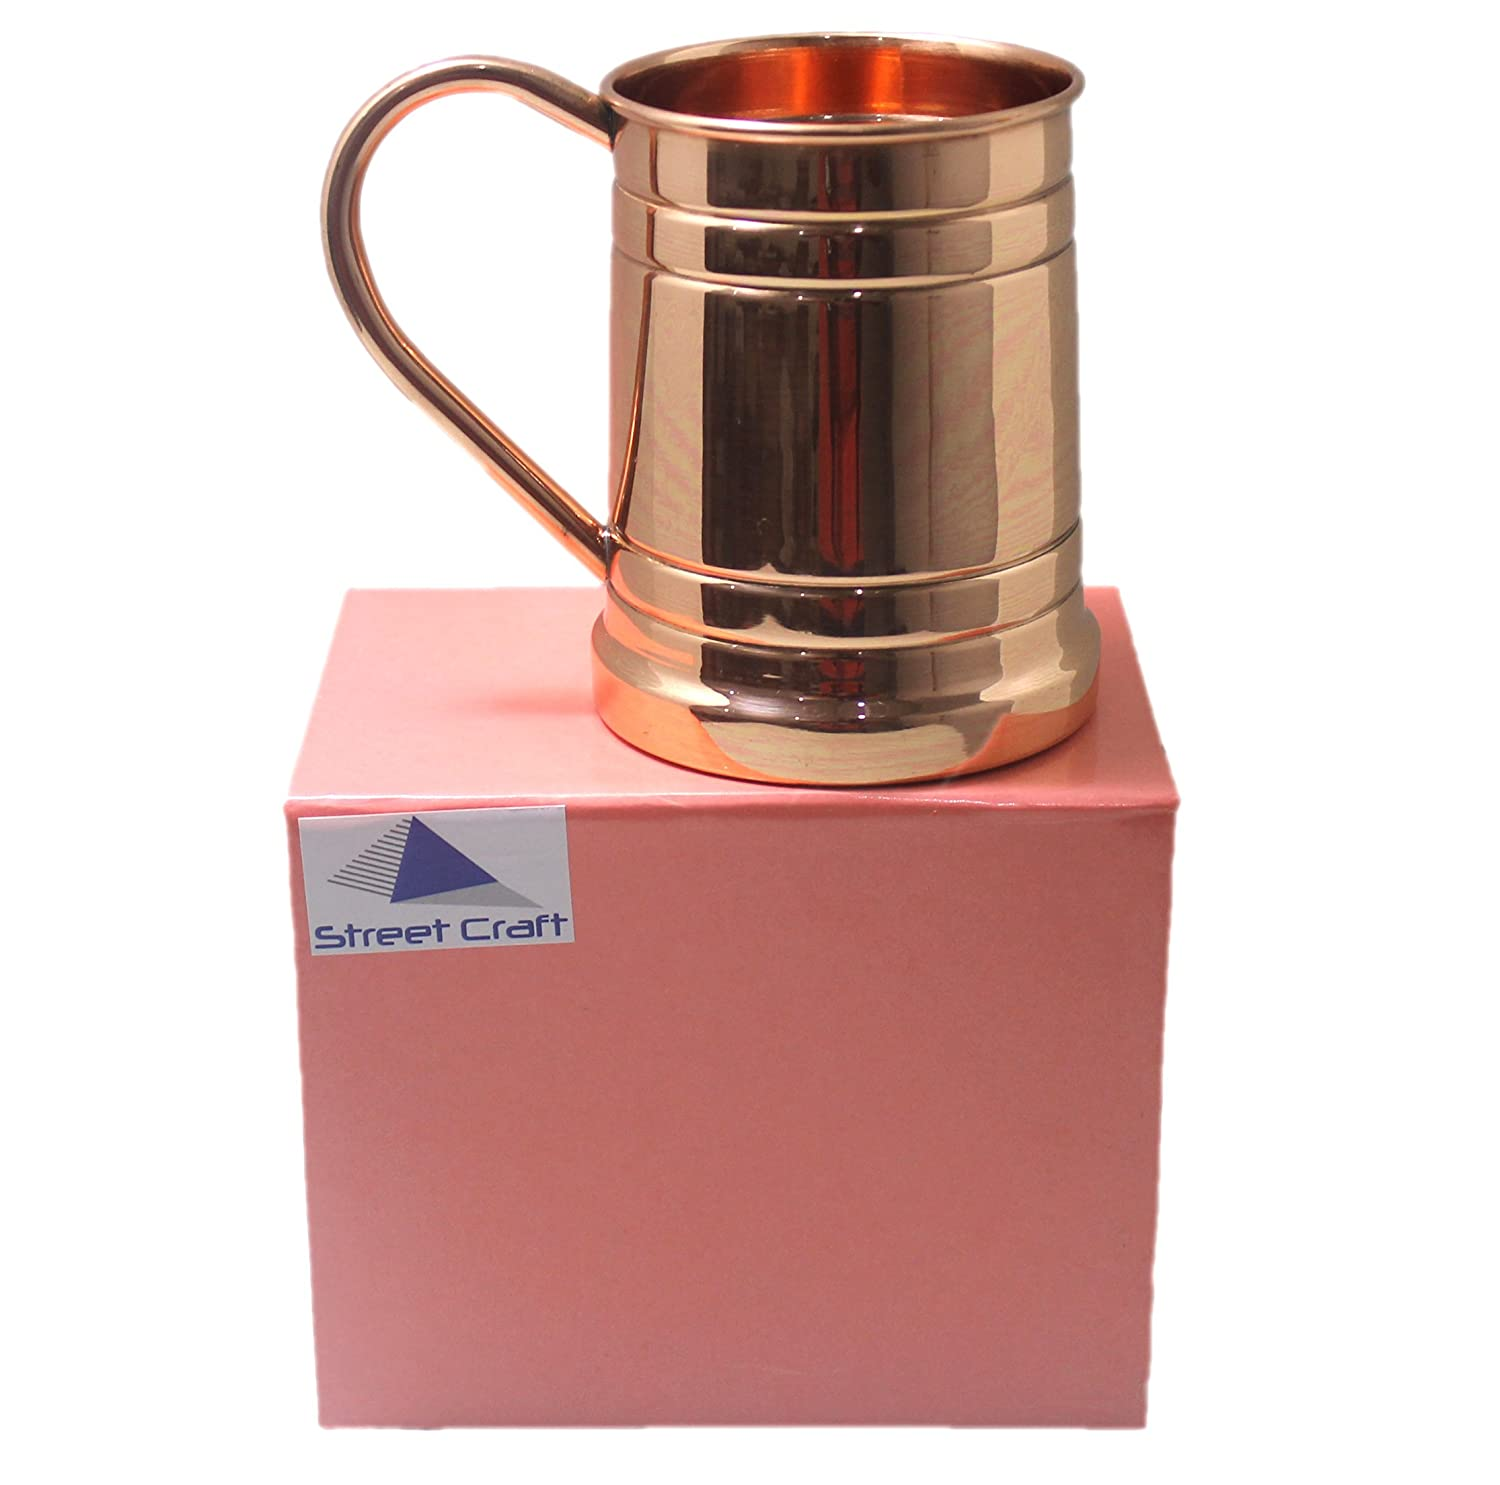 STREET CRAFT Gift Pack Solid Copper Beer Stein Mug Tankard Large Moscow Mule Copper Mugs Capacity 20 Oz Set of 1 Handmade of Pure Copper